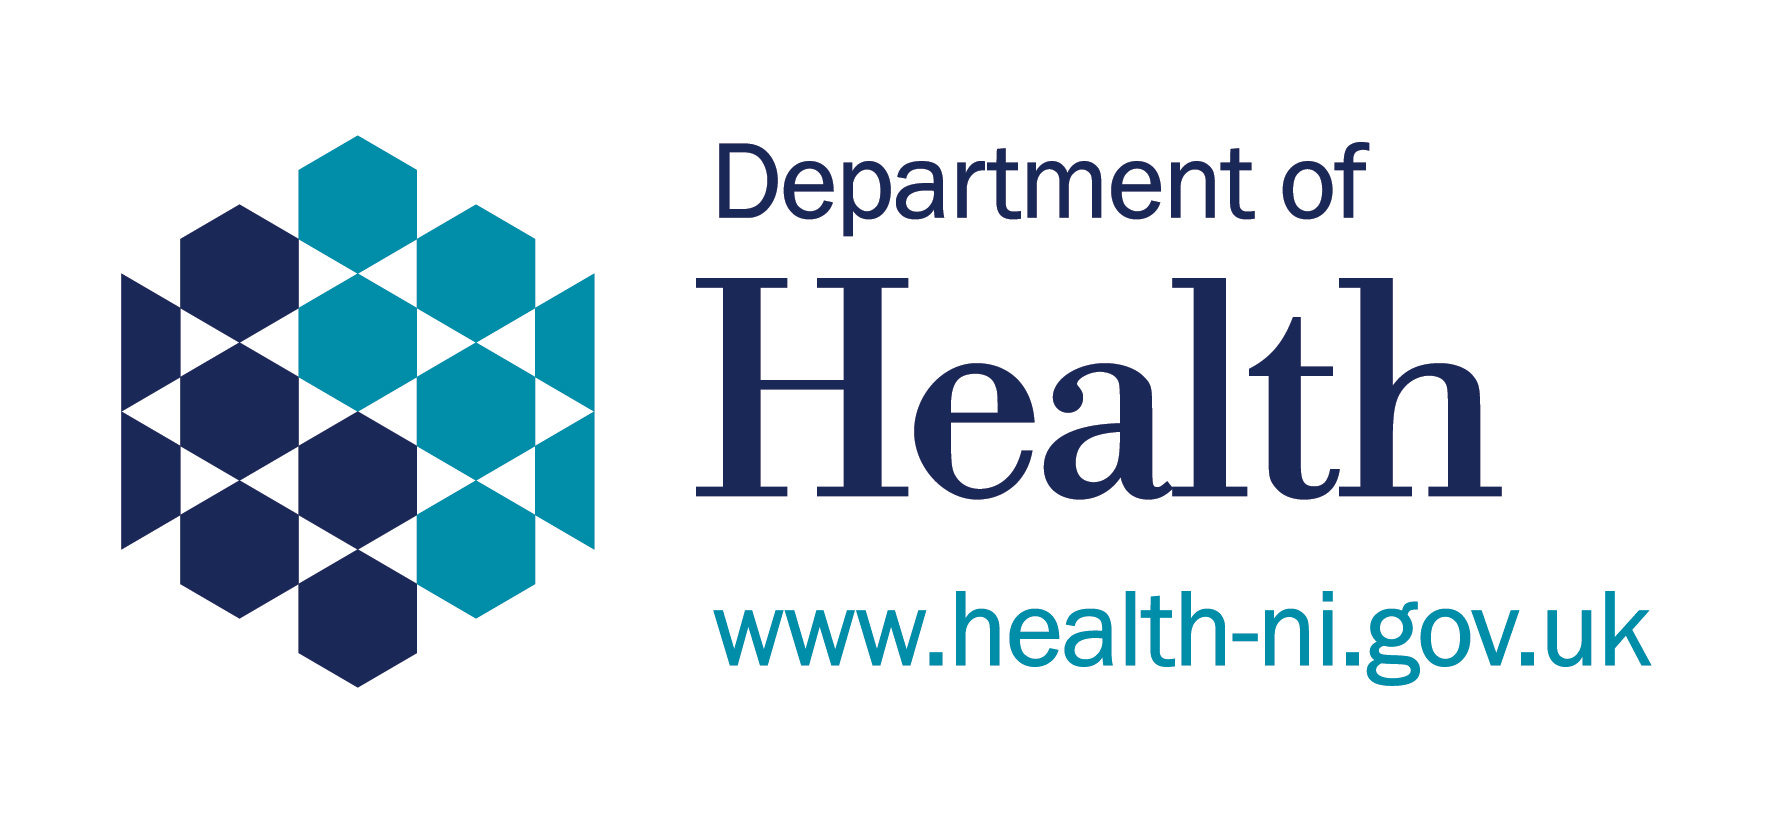 Department of Health, Social Services and Public Safety